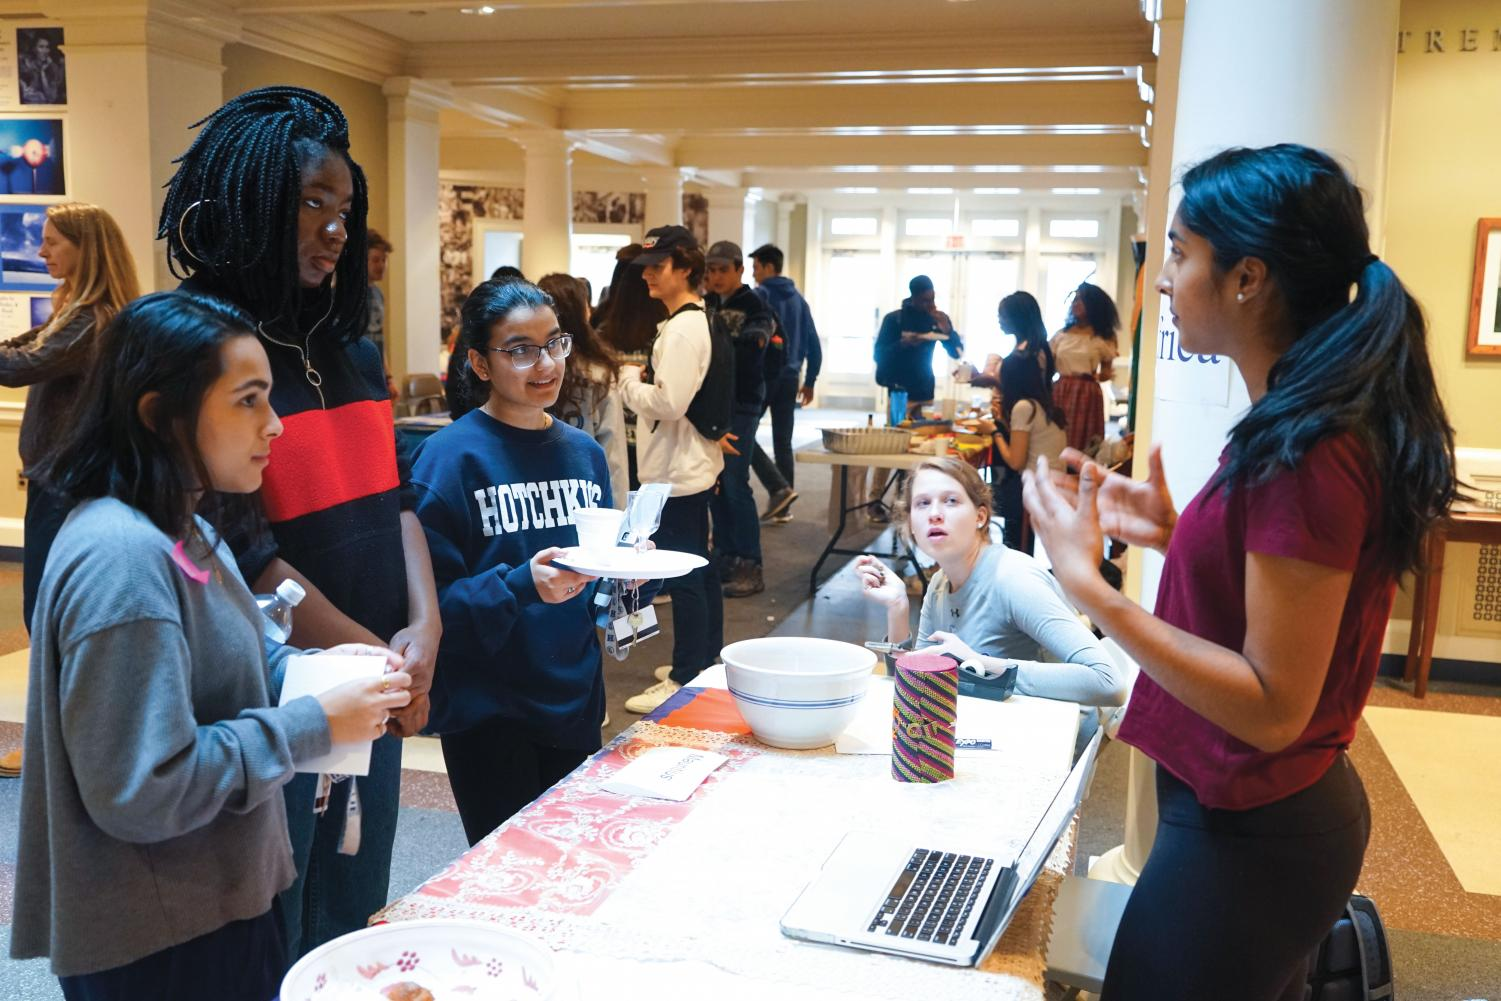 Alisa Ghura '19 presents Mauritian culture to Aritri Ghosh '19, Nneka Okoli '19, Priyanka Kumar '19, and Anne Seaman '20 at the Cultural Fair.